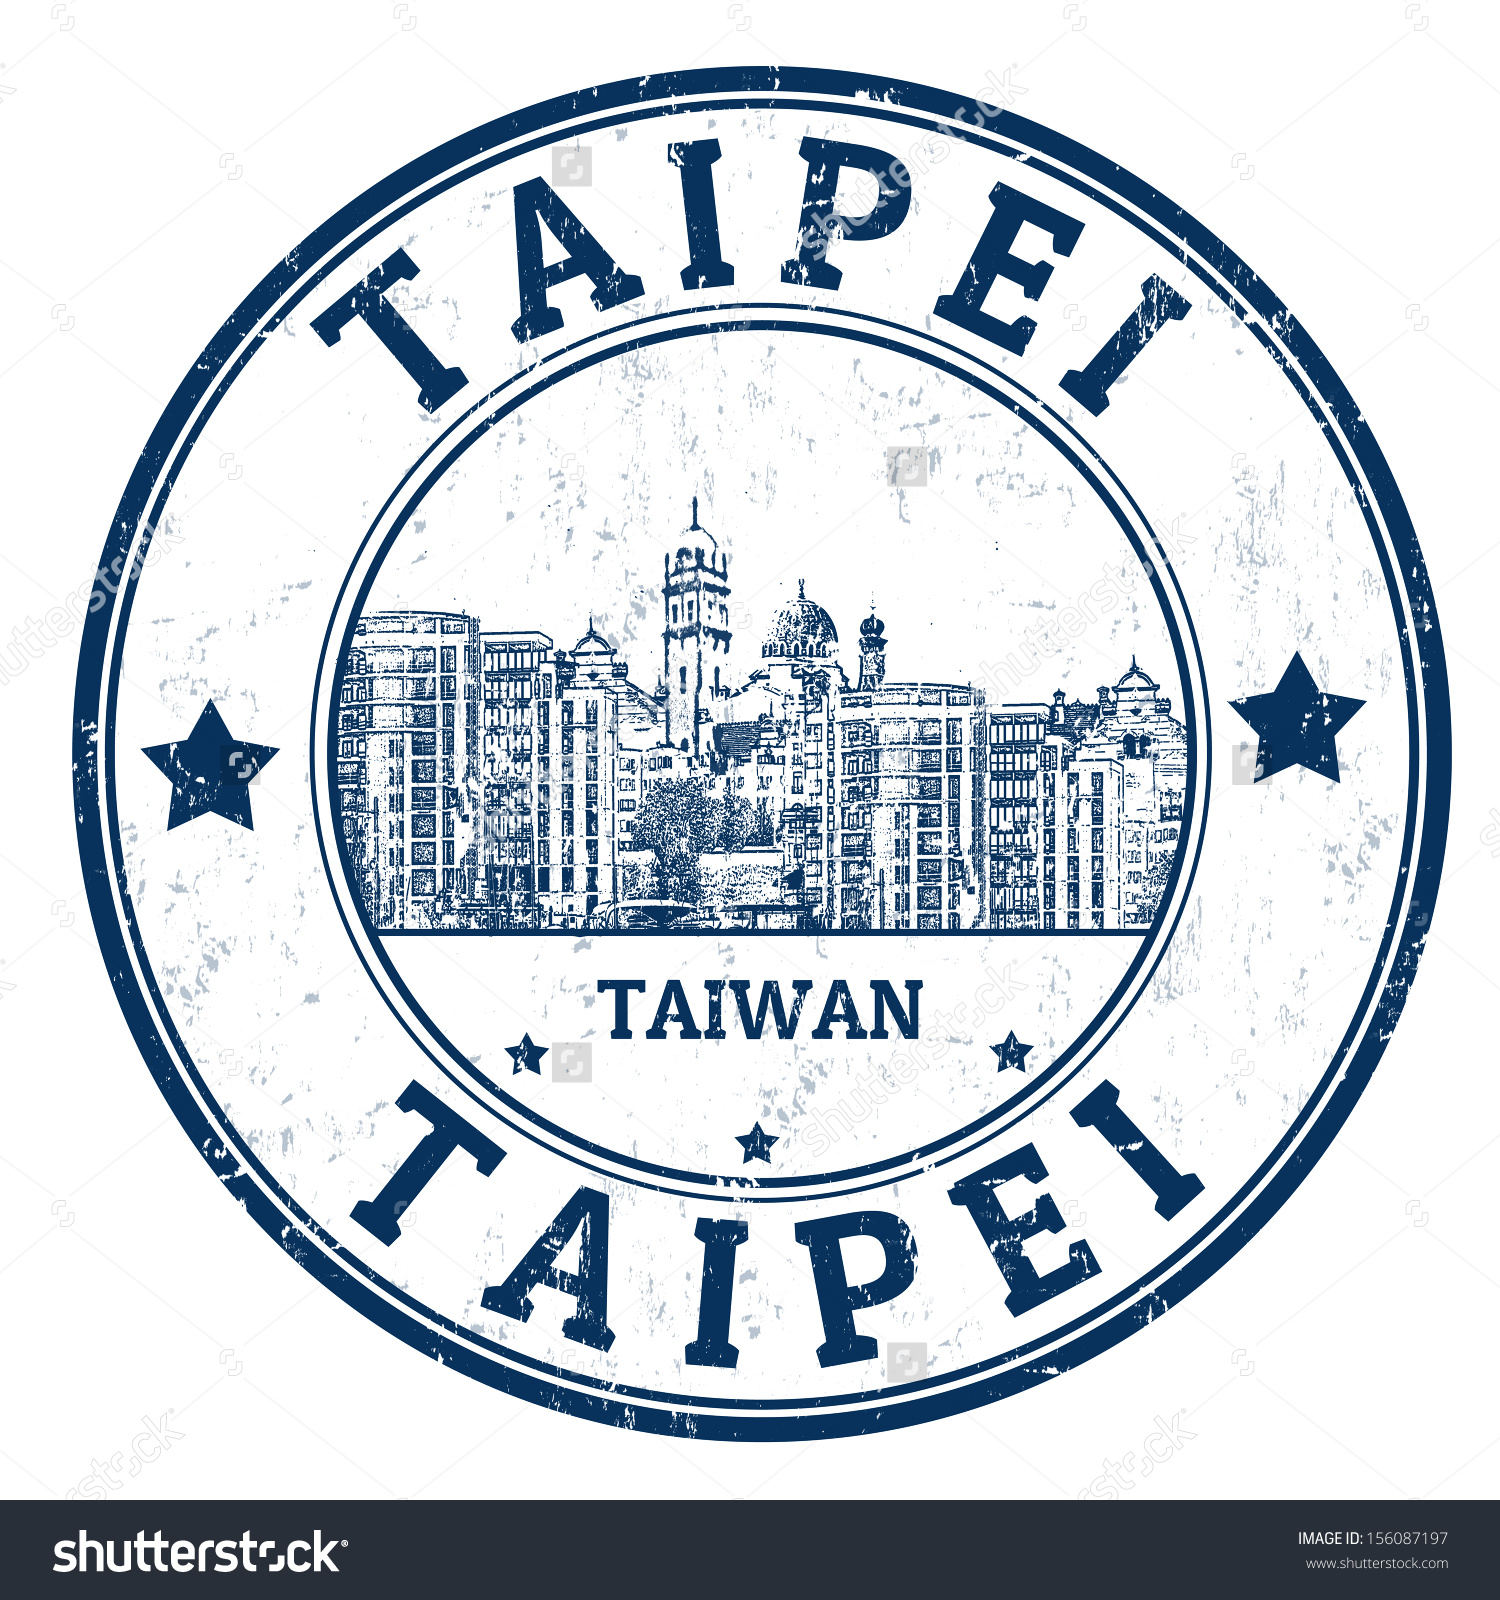 Grunge Rubber Stamp Name Taipei City Stock Vector 156087197.